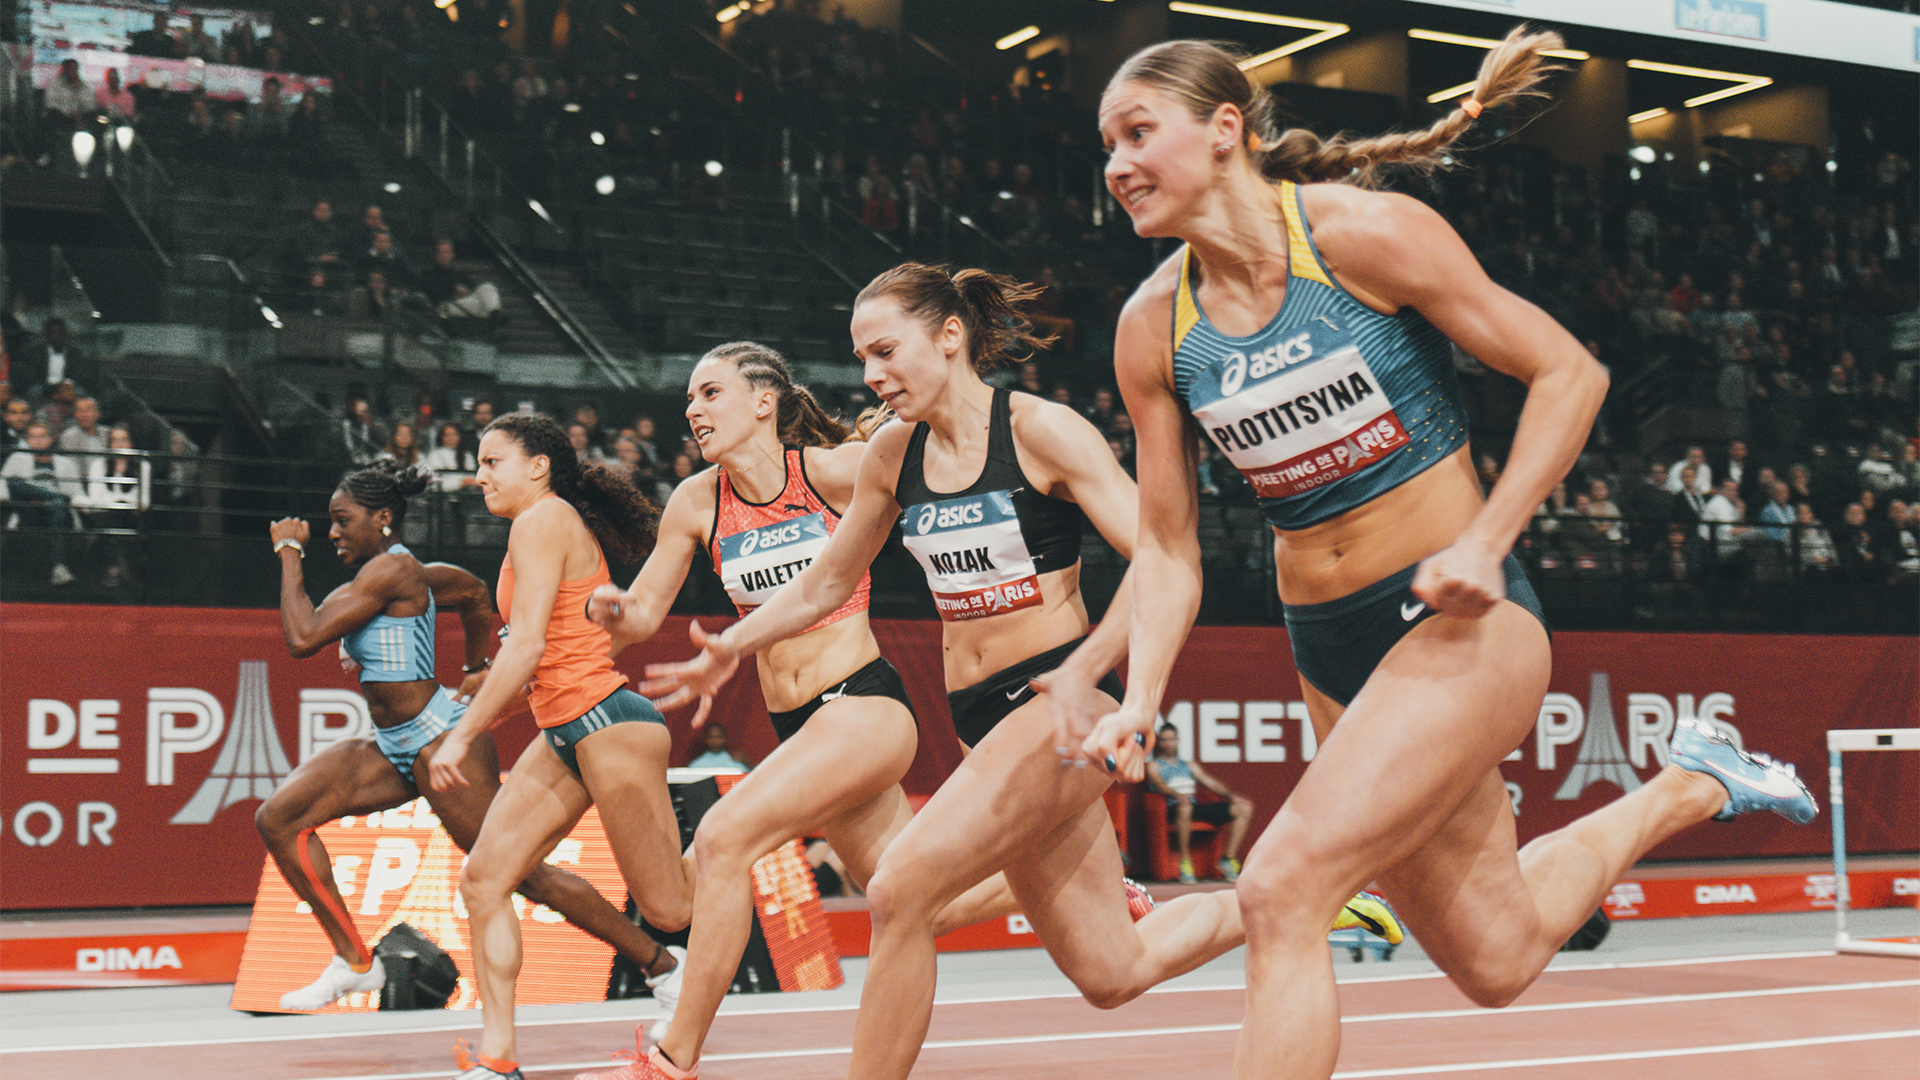 Meeting de Paris Indoor : L'athlétisme et la fête